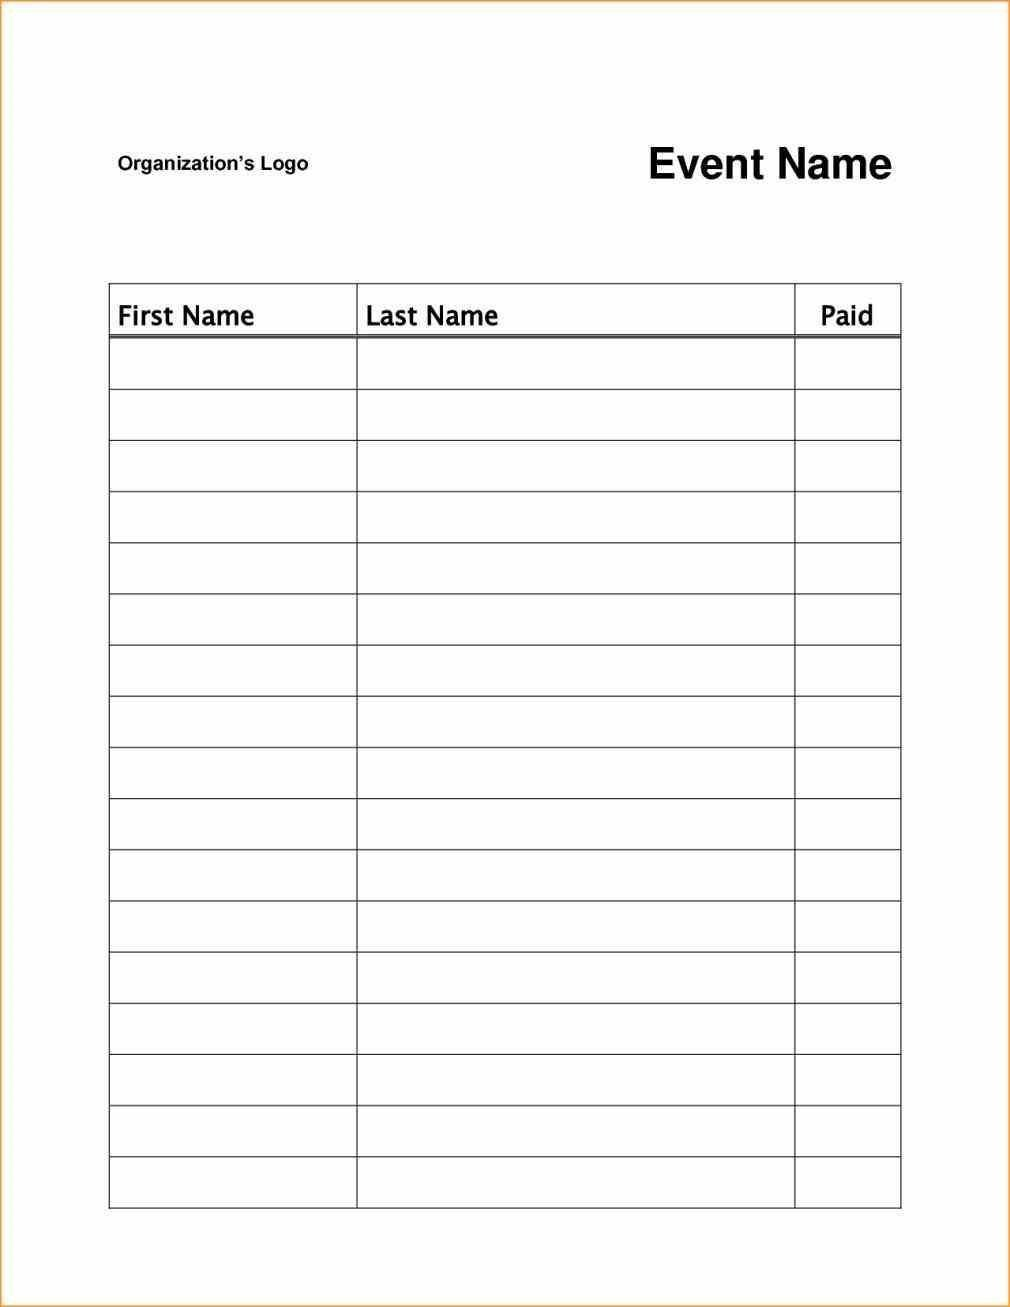 003 Breathtaking Pdf Sign Up Sheet Template High Resolution Full